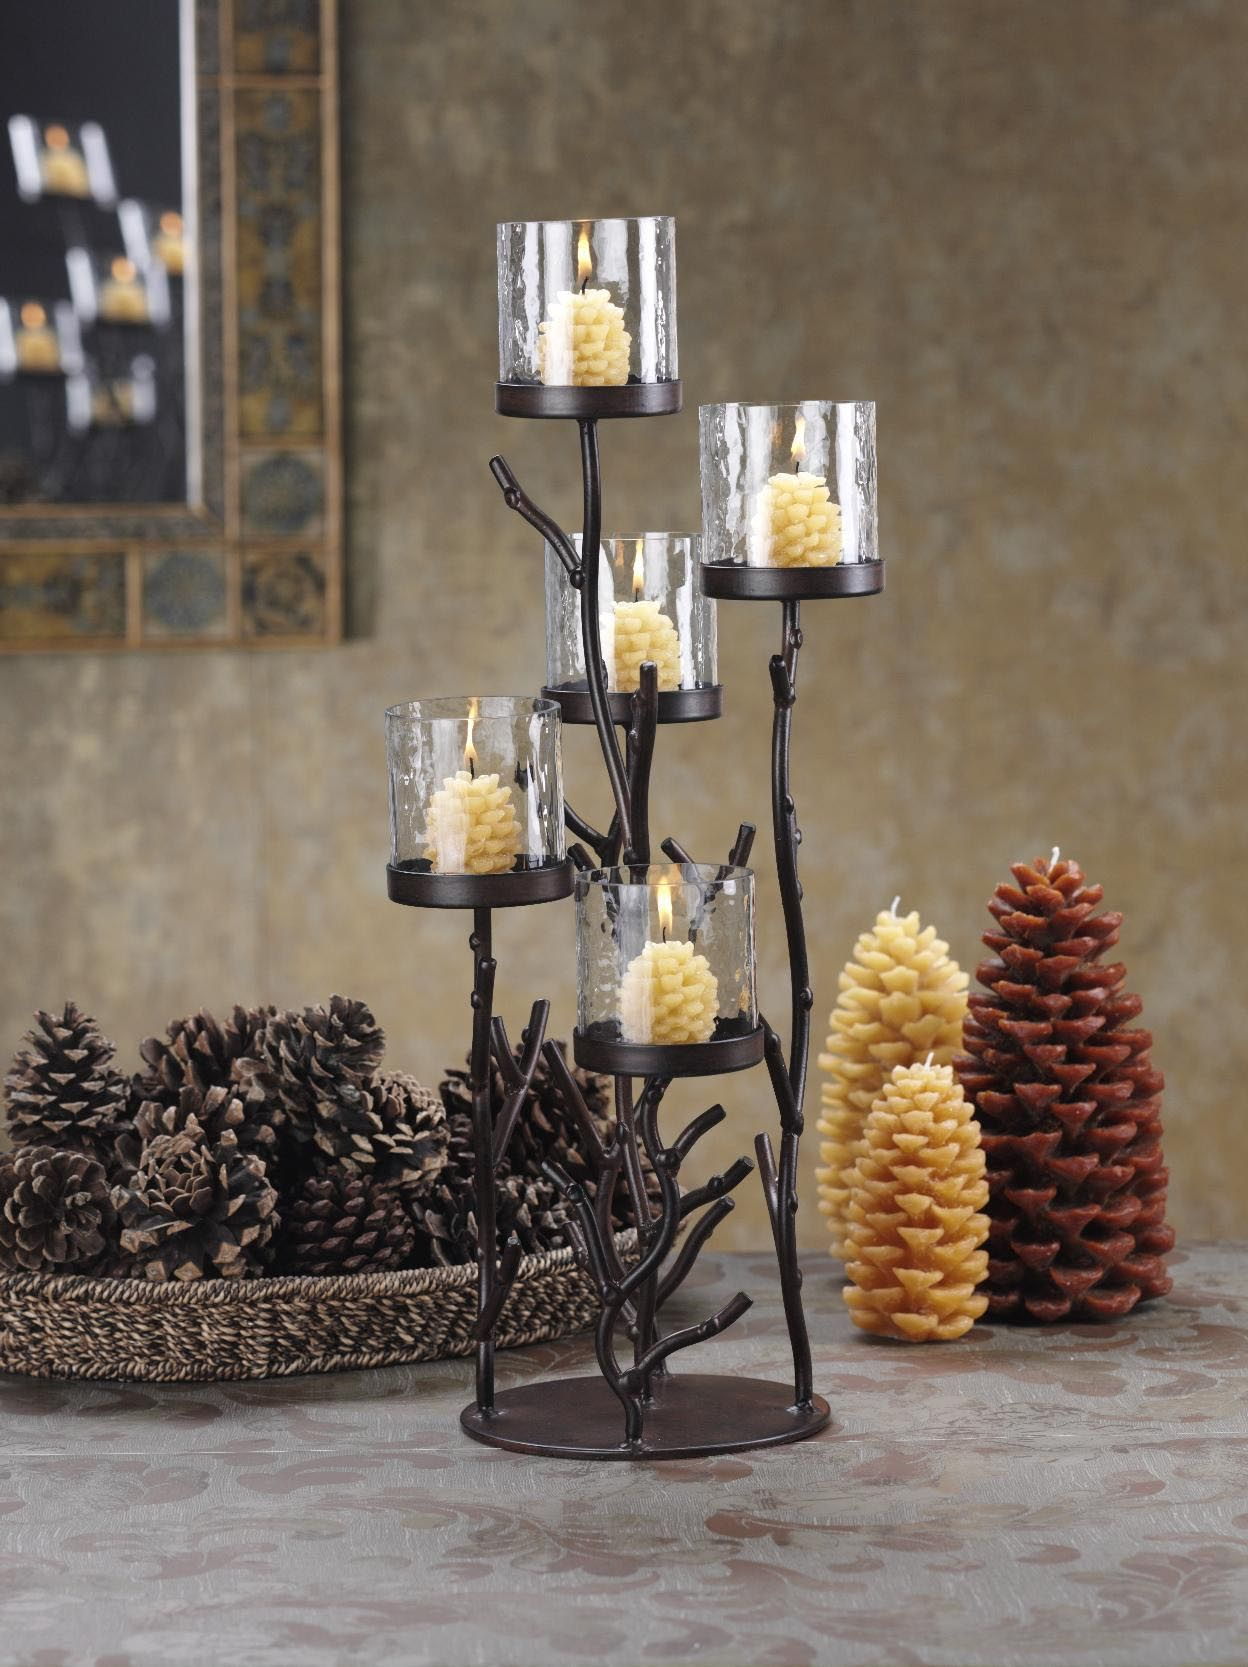 Wrought Iron Candle Holders For Fireplace Wrought Iron Candle Holders Wrought Iron Candle Iron Candle Holders